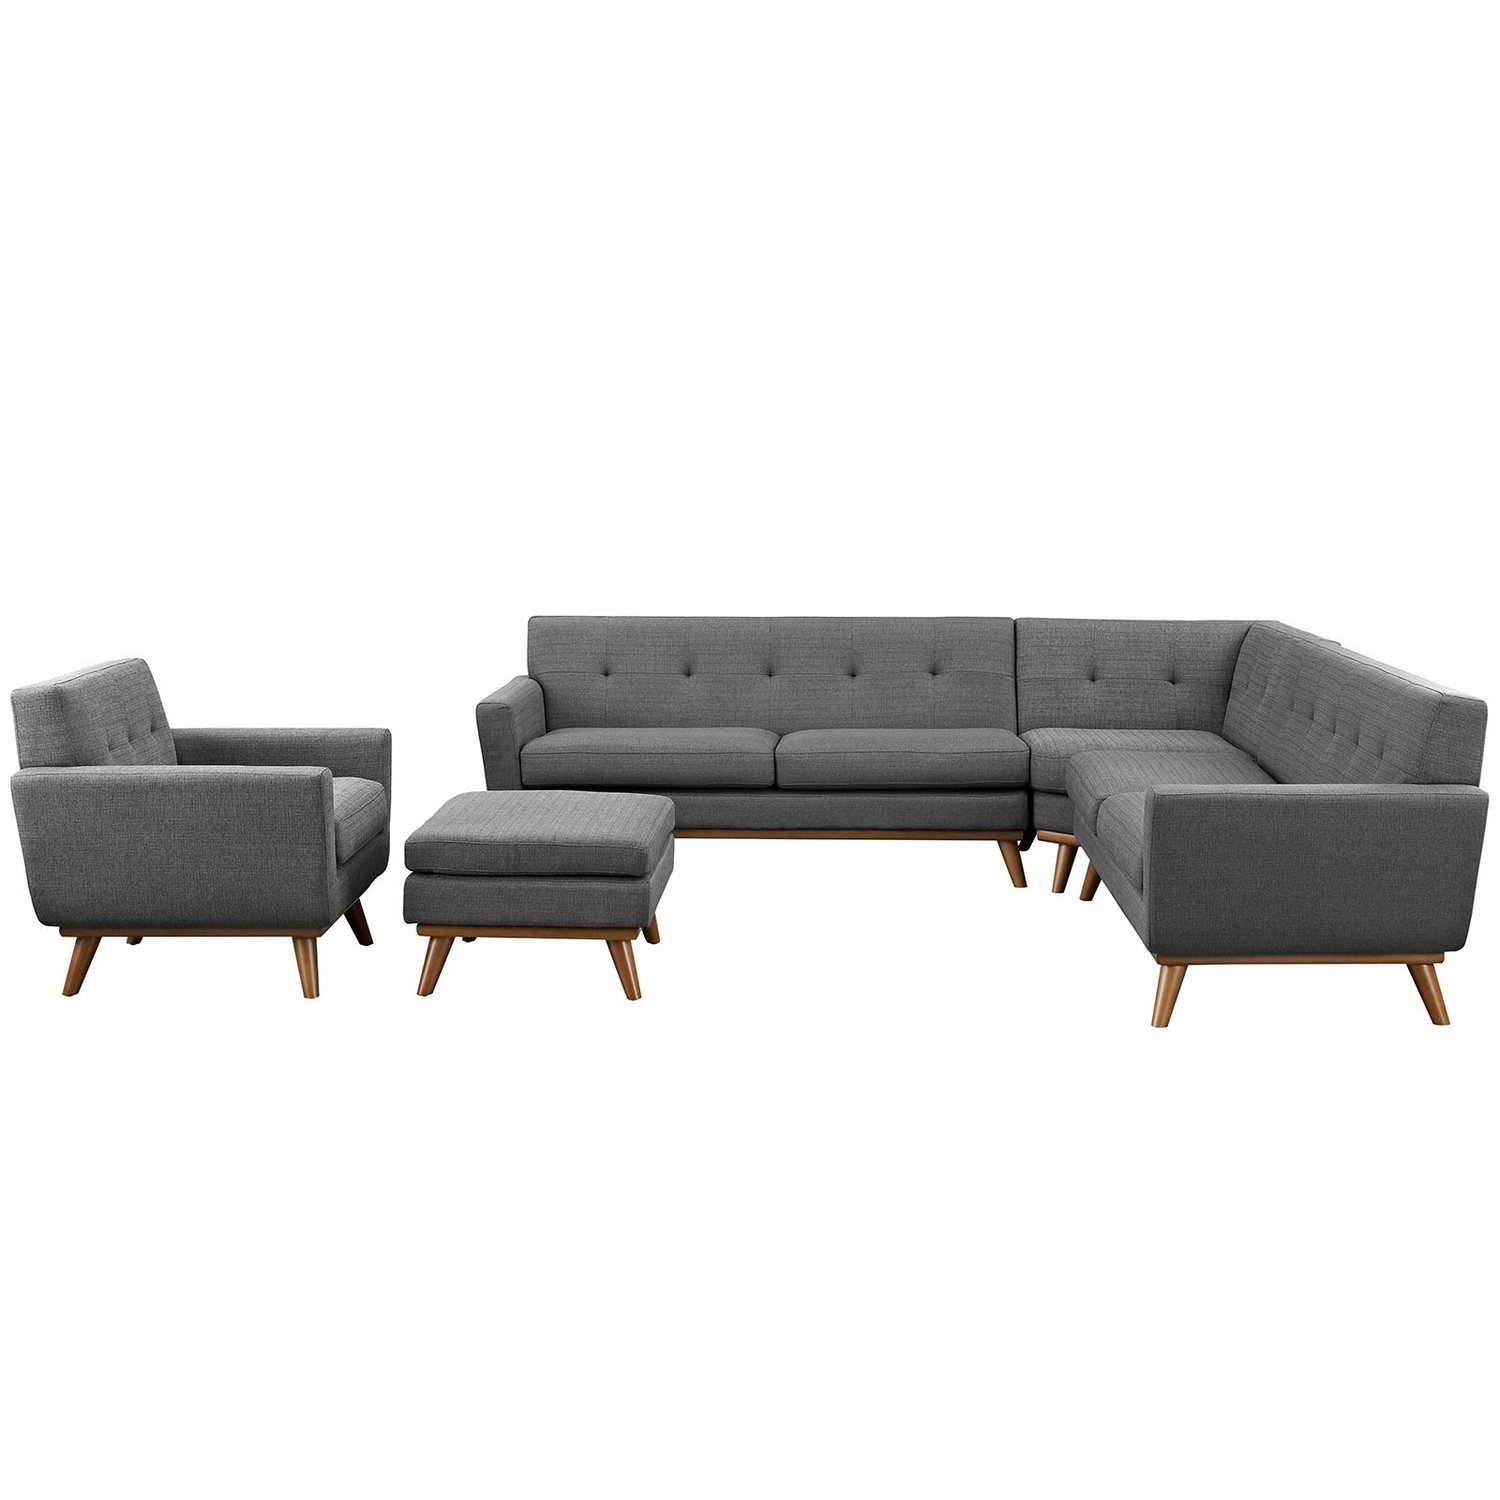 Modway Engage 5 Piece Sectional Sofa - Expectation Gray